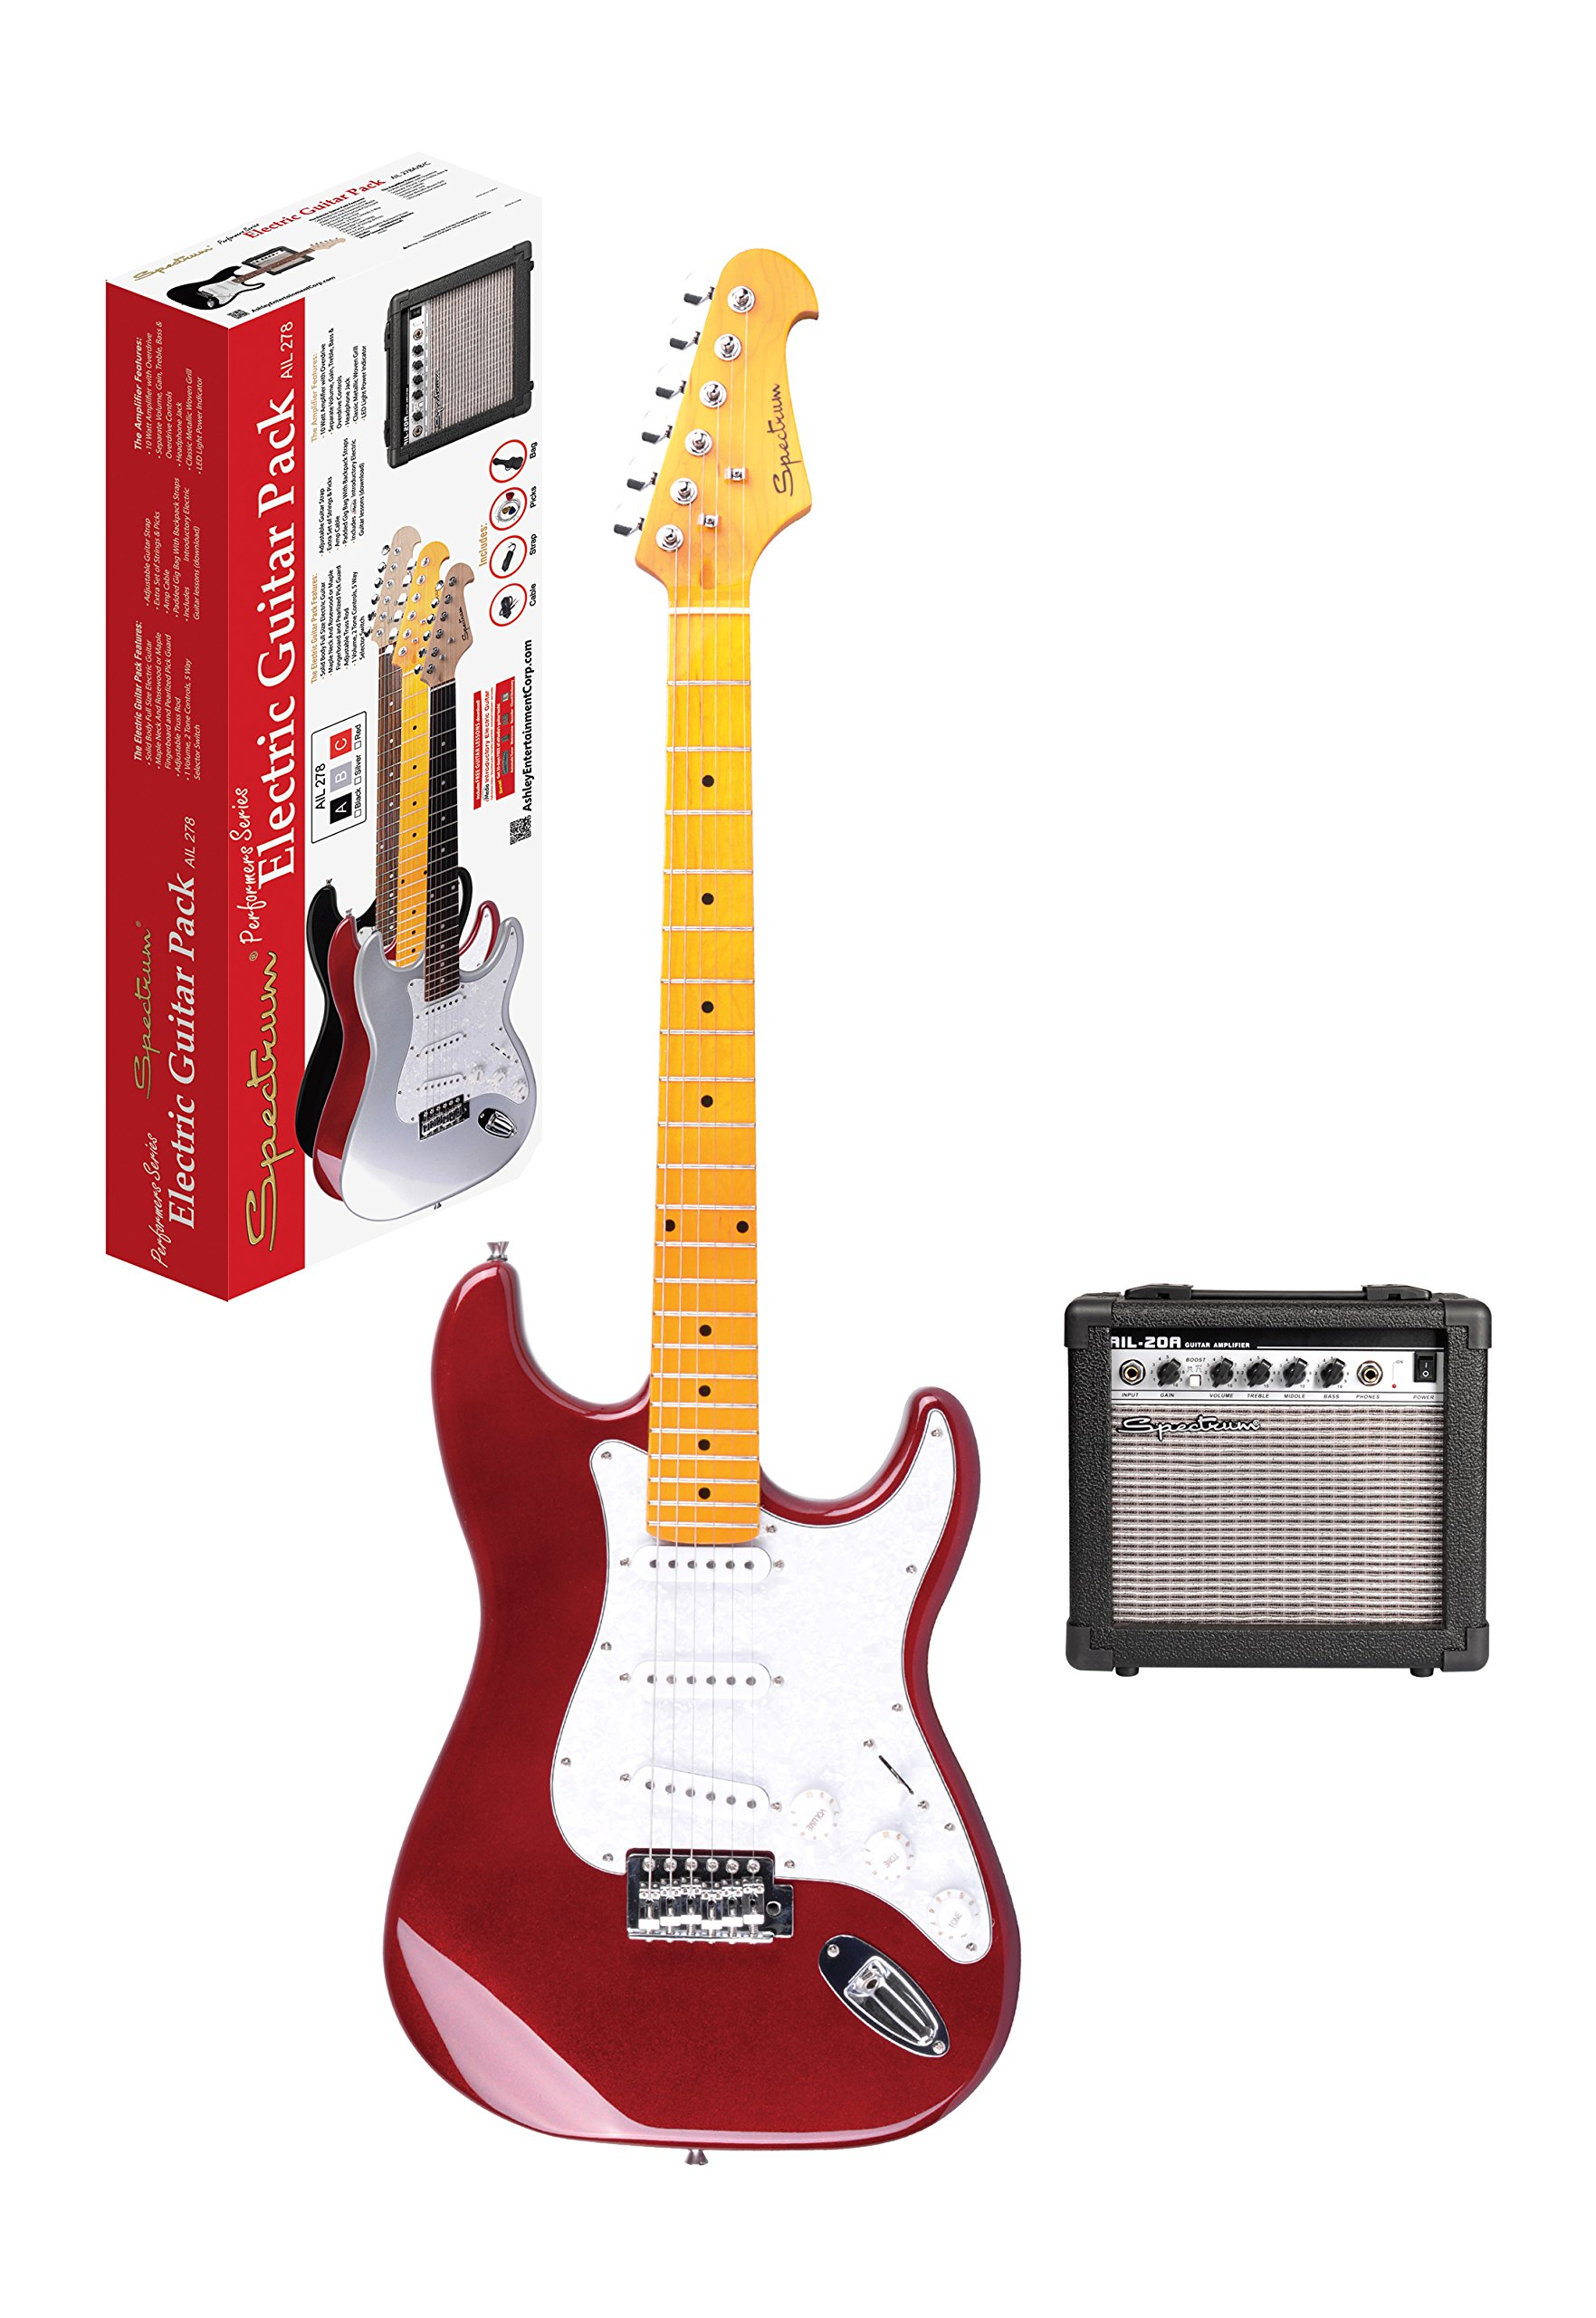 Spectrum AIL 278C Electric Guitar Pack, Red & White by Spectrum